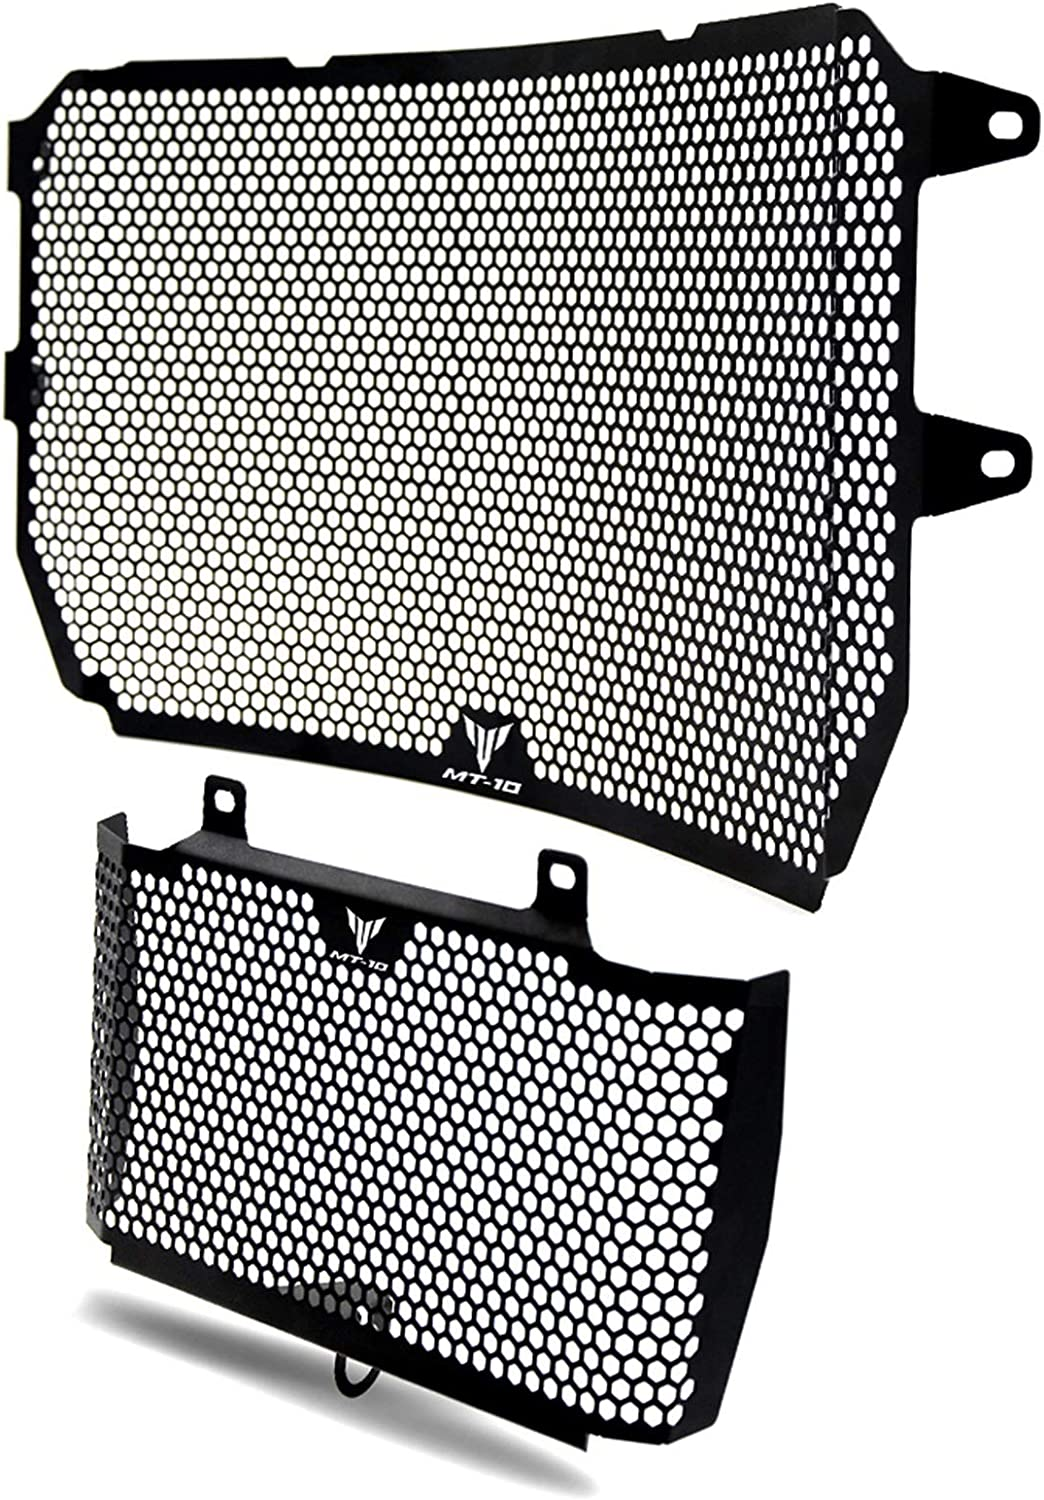 Color : Big FZ10 VSKTE Motorcycle Accessories Radiator Guard Cover Protector Grille Fits For YAMAHA MT10 MT 10 MT-10 SP FZ10 FZ-10 2016 2017 2018 2019 2020 Accessories